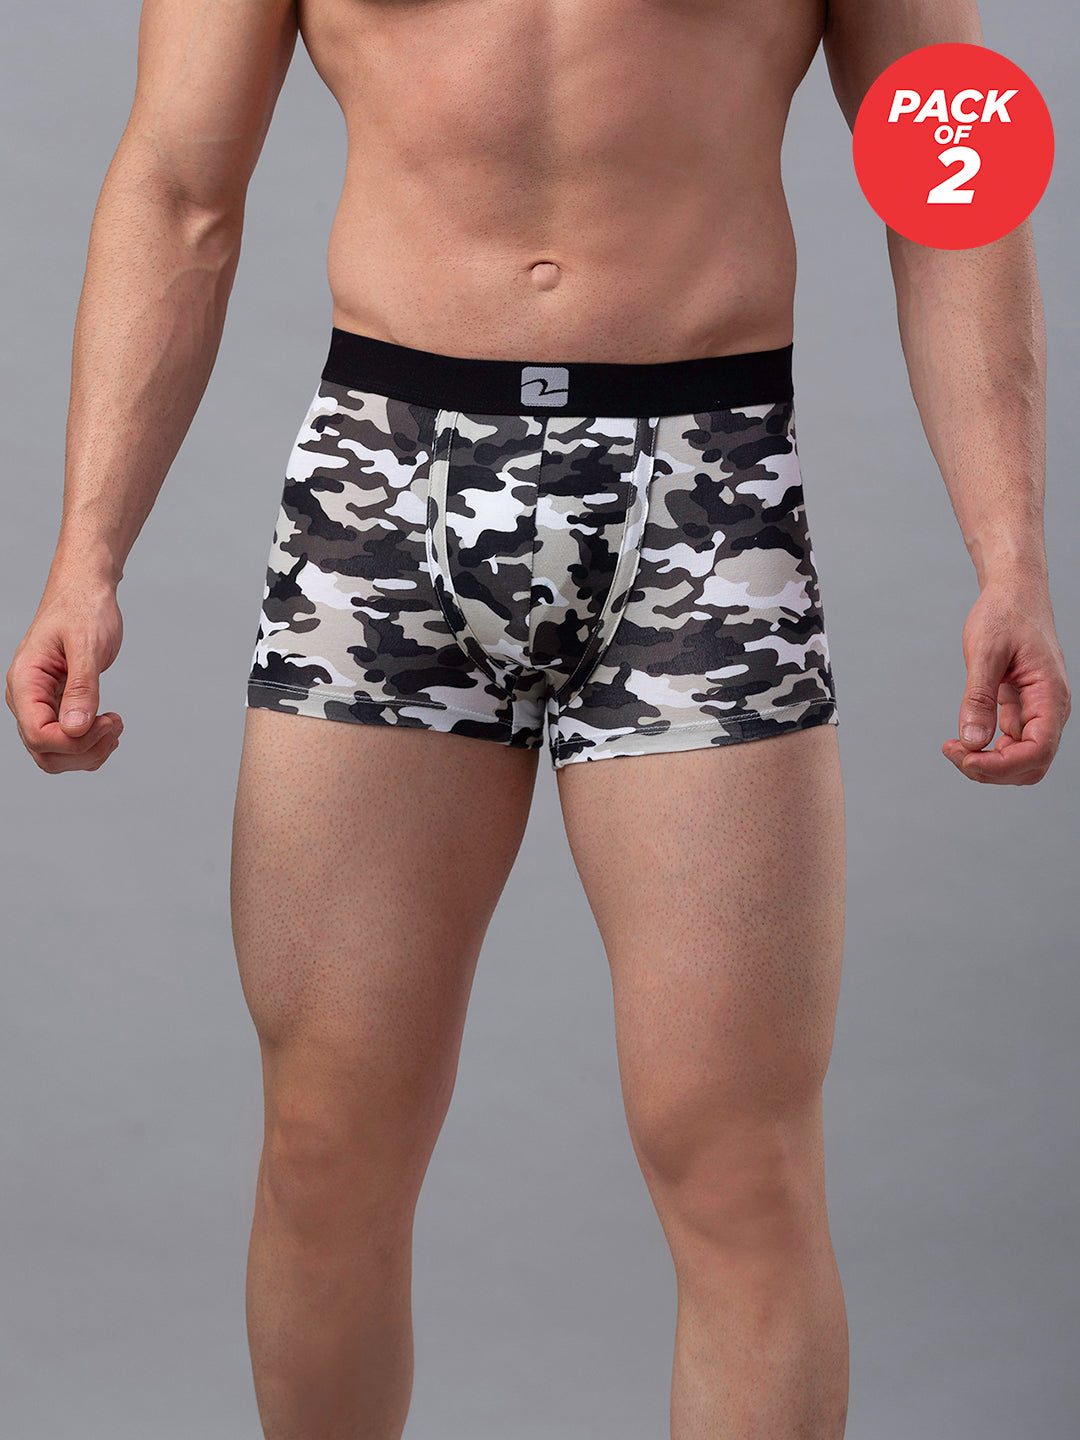 Underjeans Print Cotton Trunk - Pack of 2